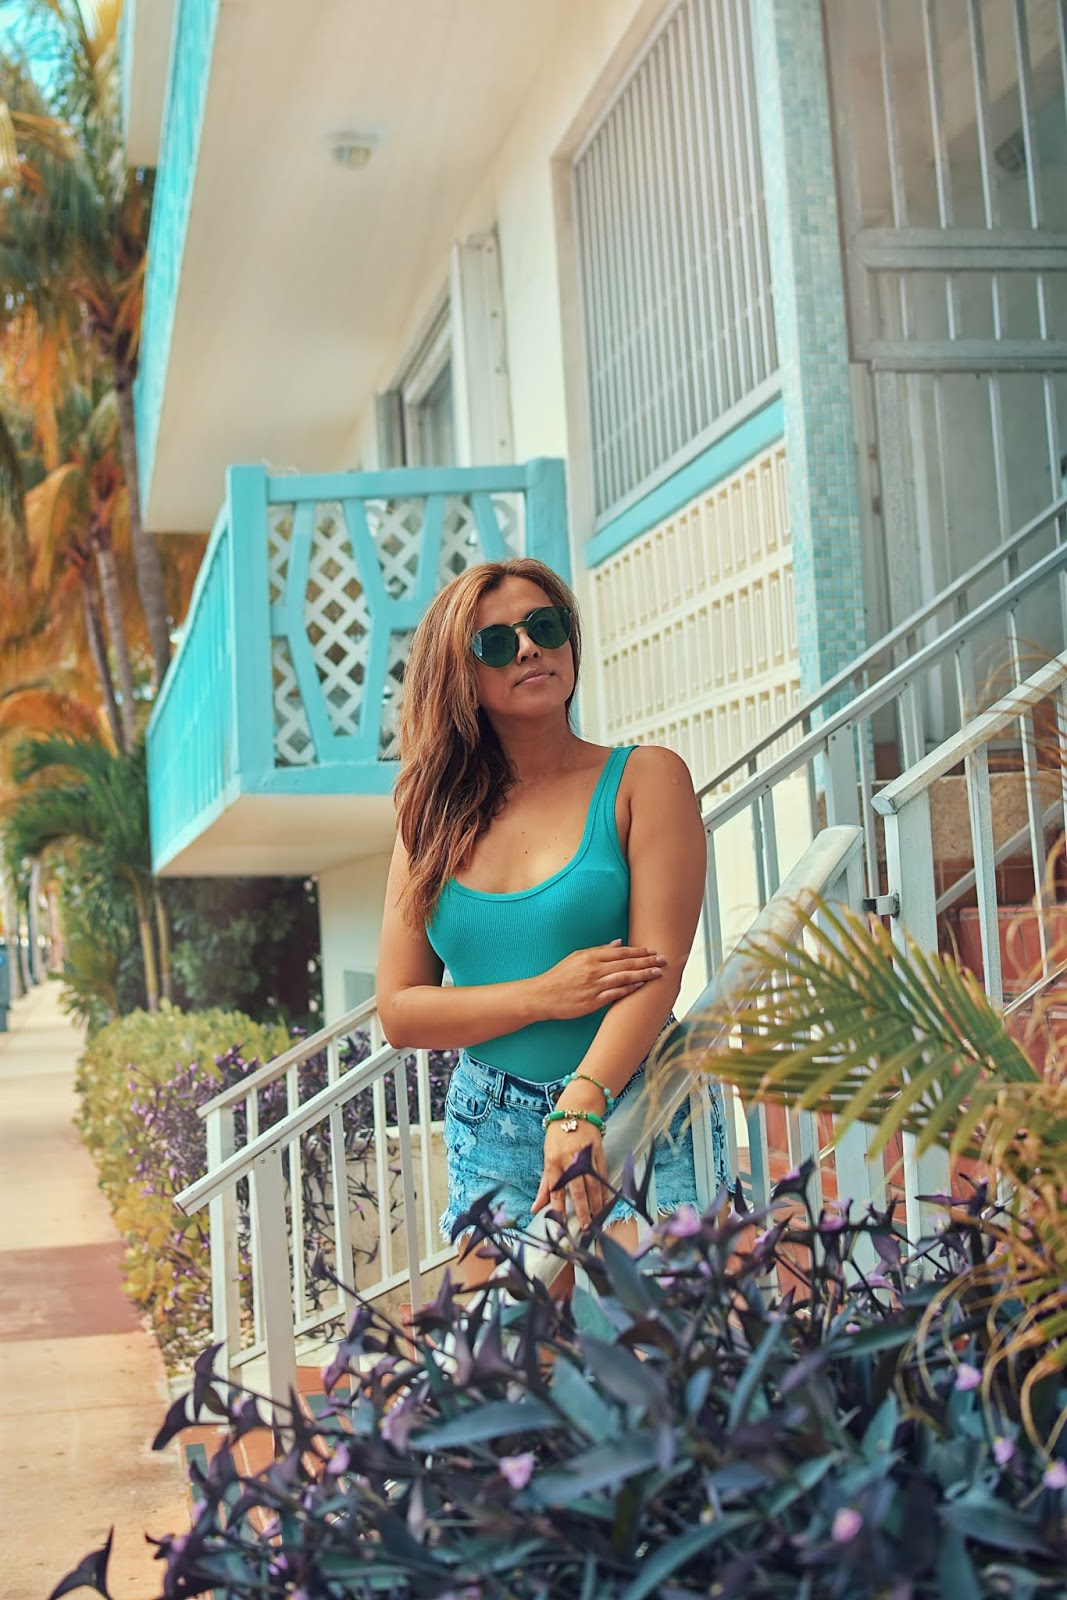 Blue Stars-Print Raw Hem Washed Denim Shorts-mariestilo-lookbook store-miami-travel-southbeach-modaelsalvador-dcblogger-denim lovers-street wear-outfits de verano-moda-fashionista-it girl-ootd-